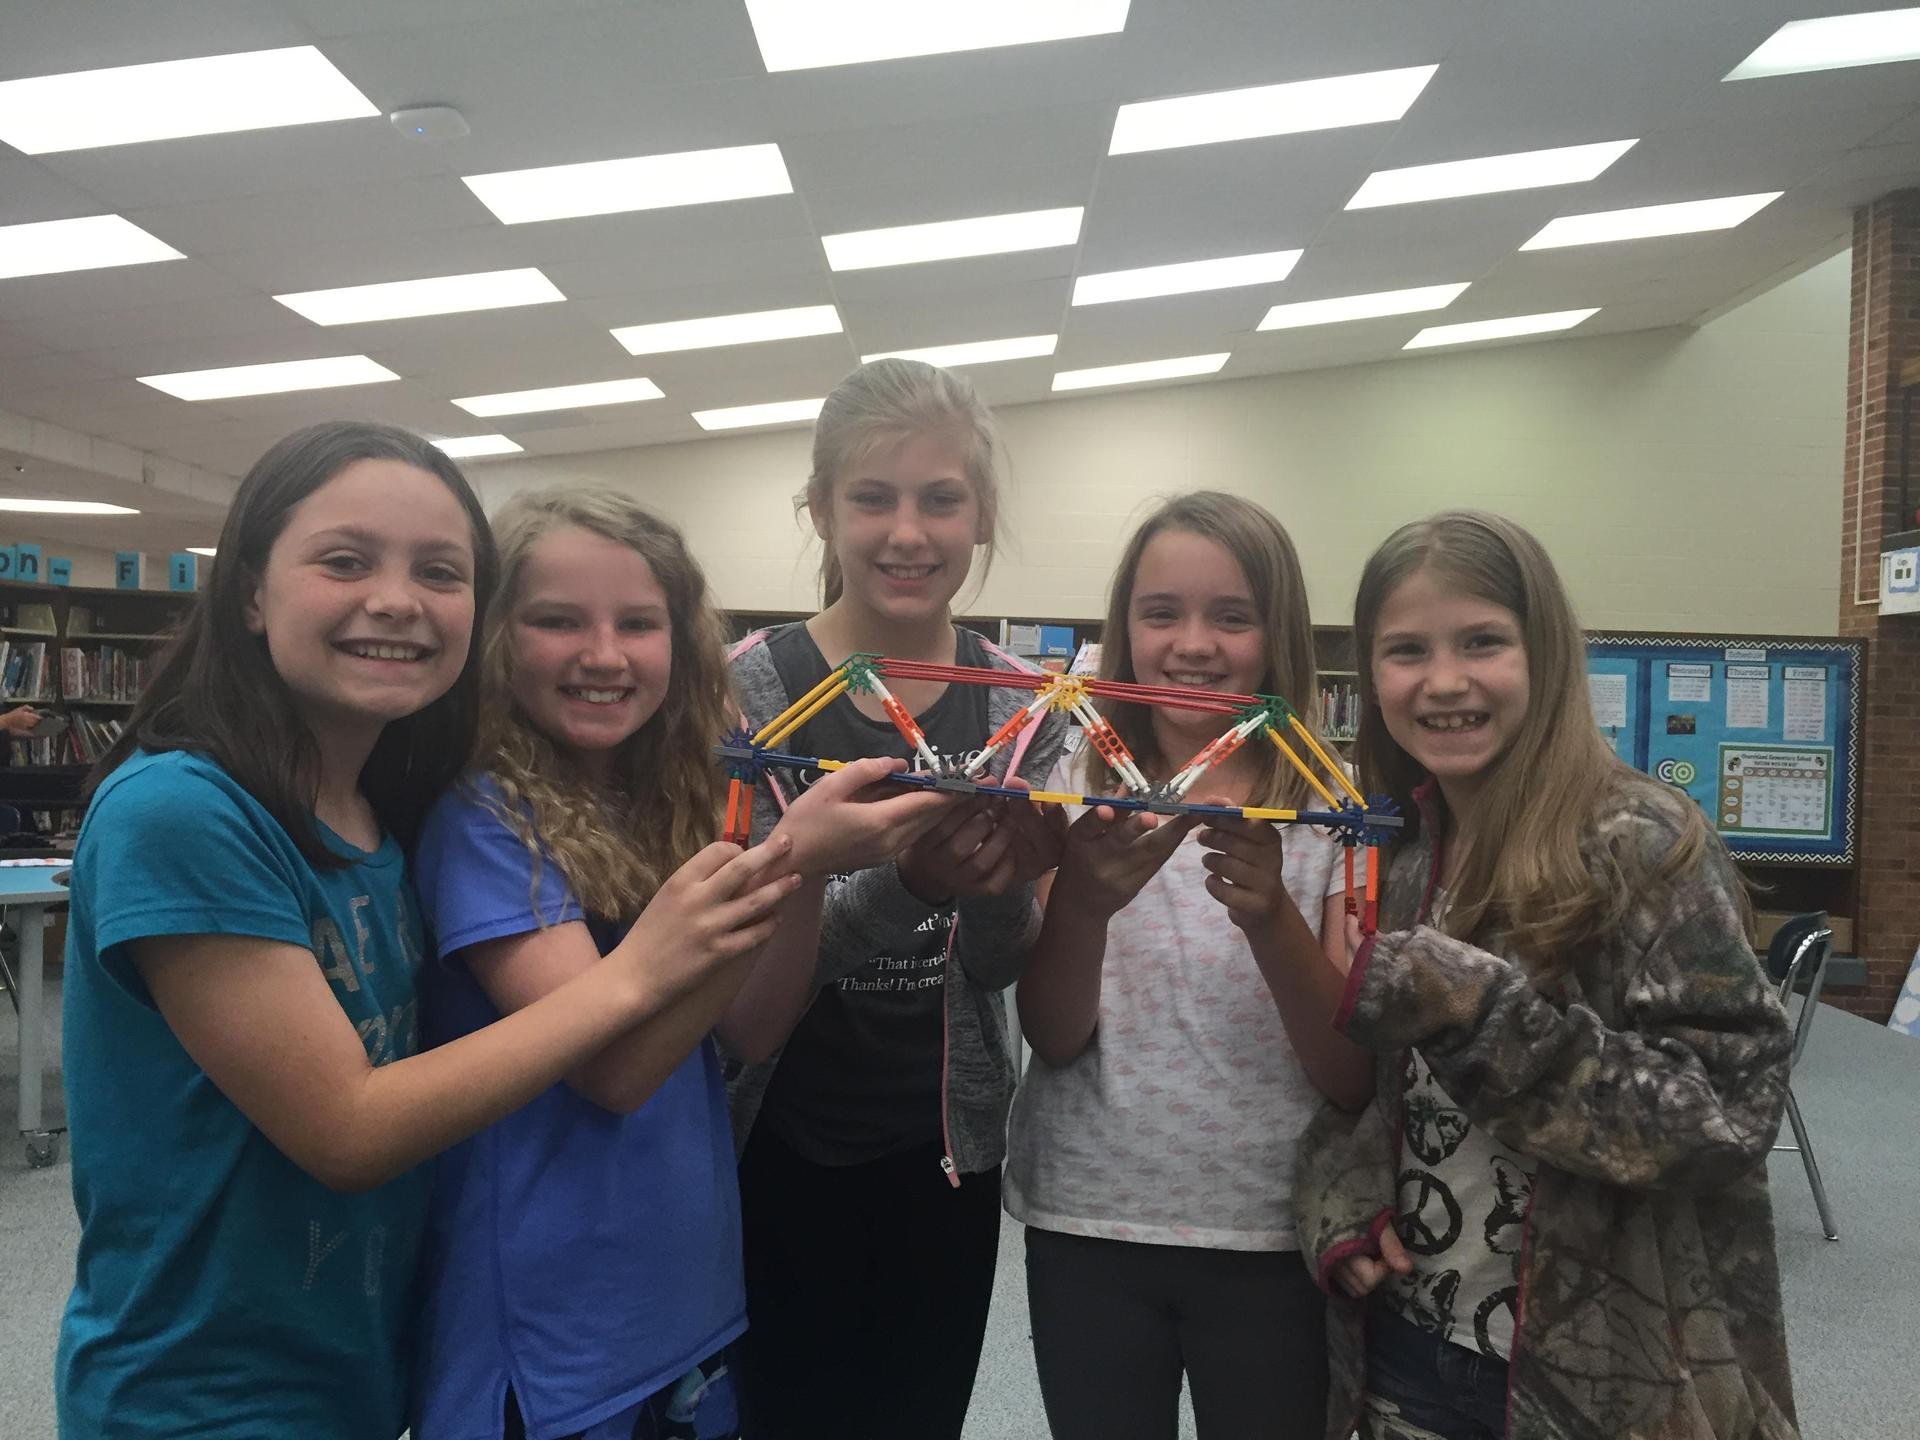 Engineering and Building with Knex, Legos & STEM activities